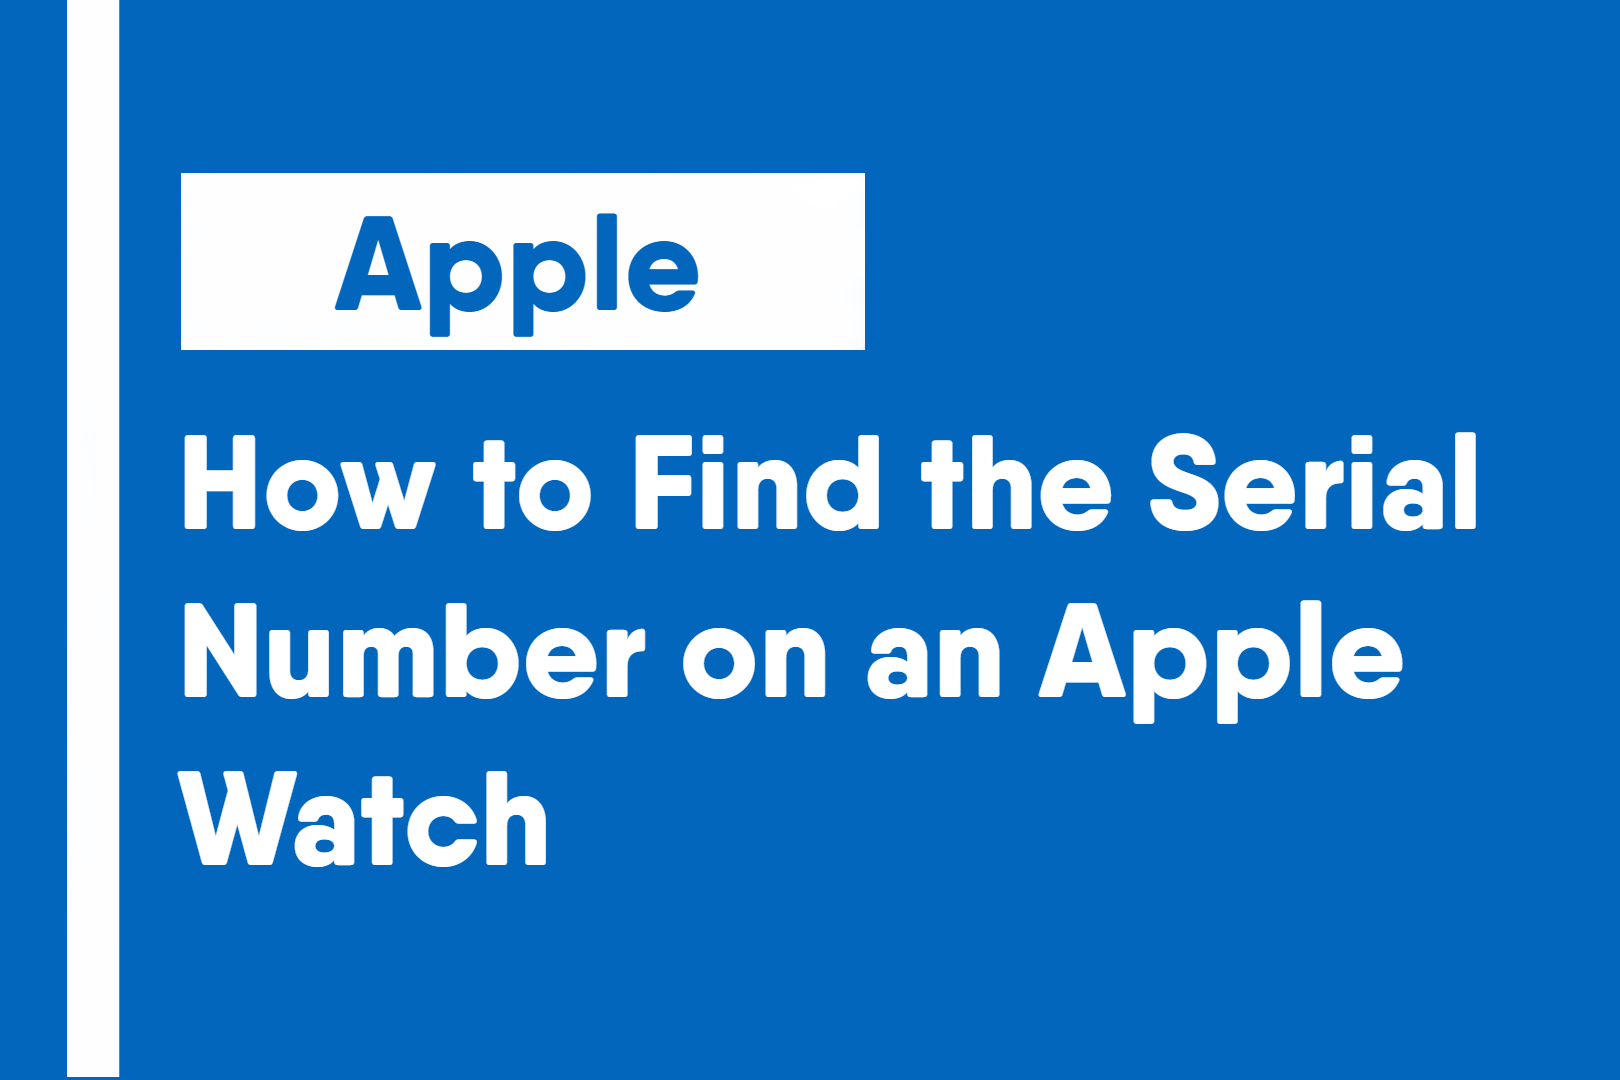 How to Find the Serial Number on an Apple Watch